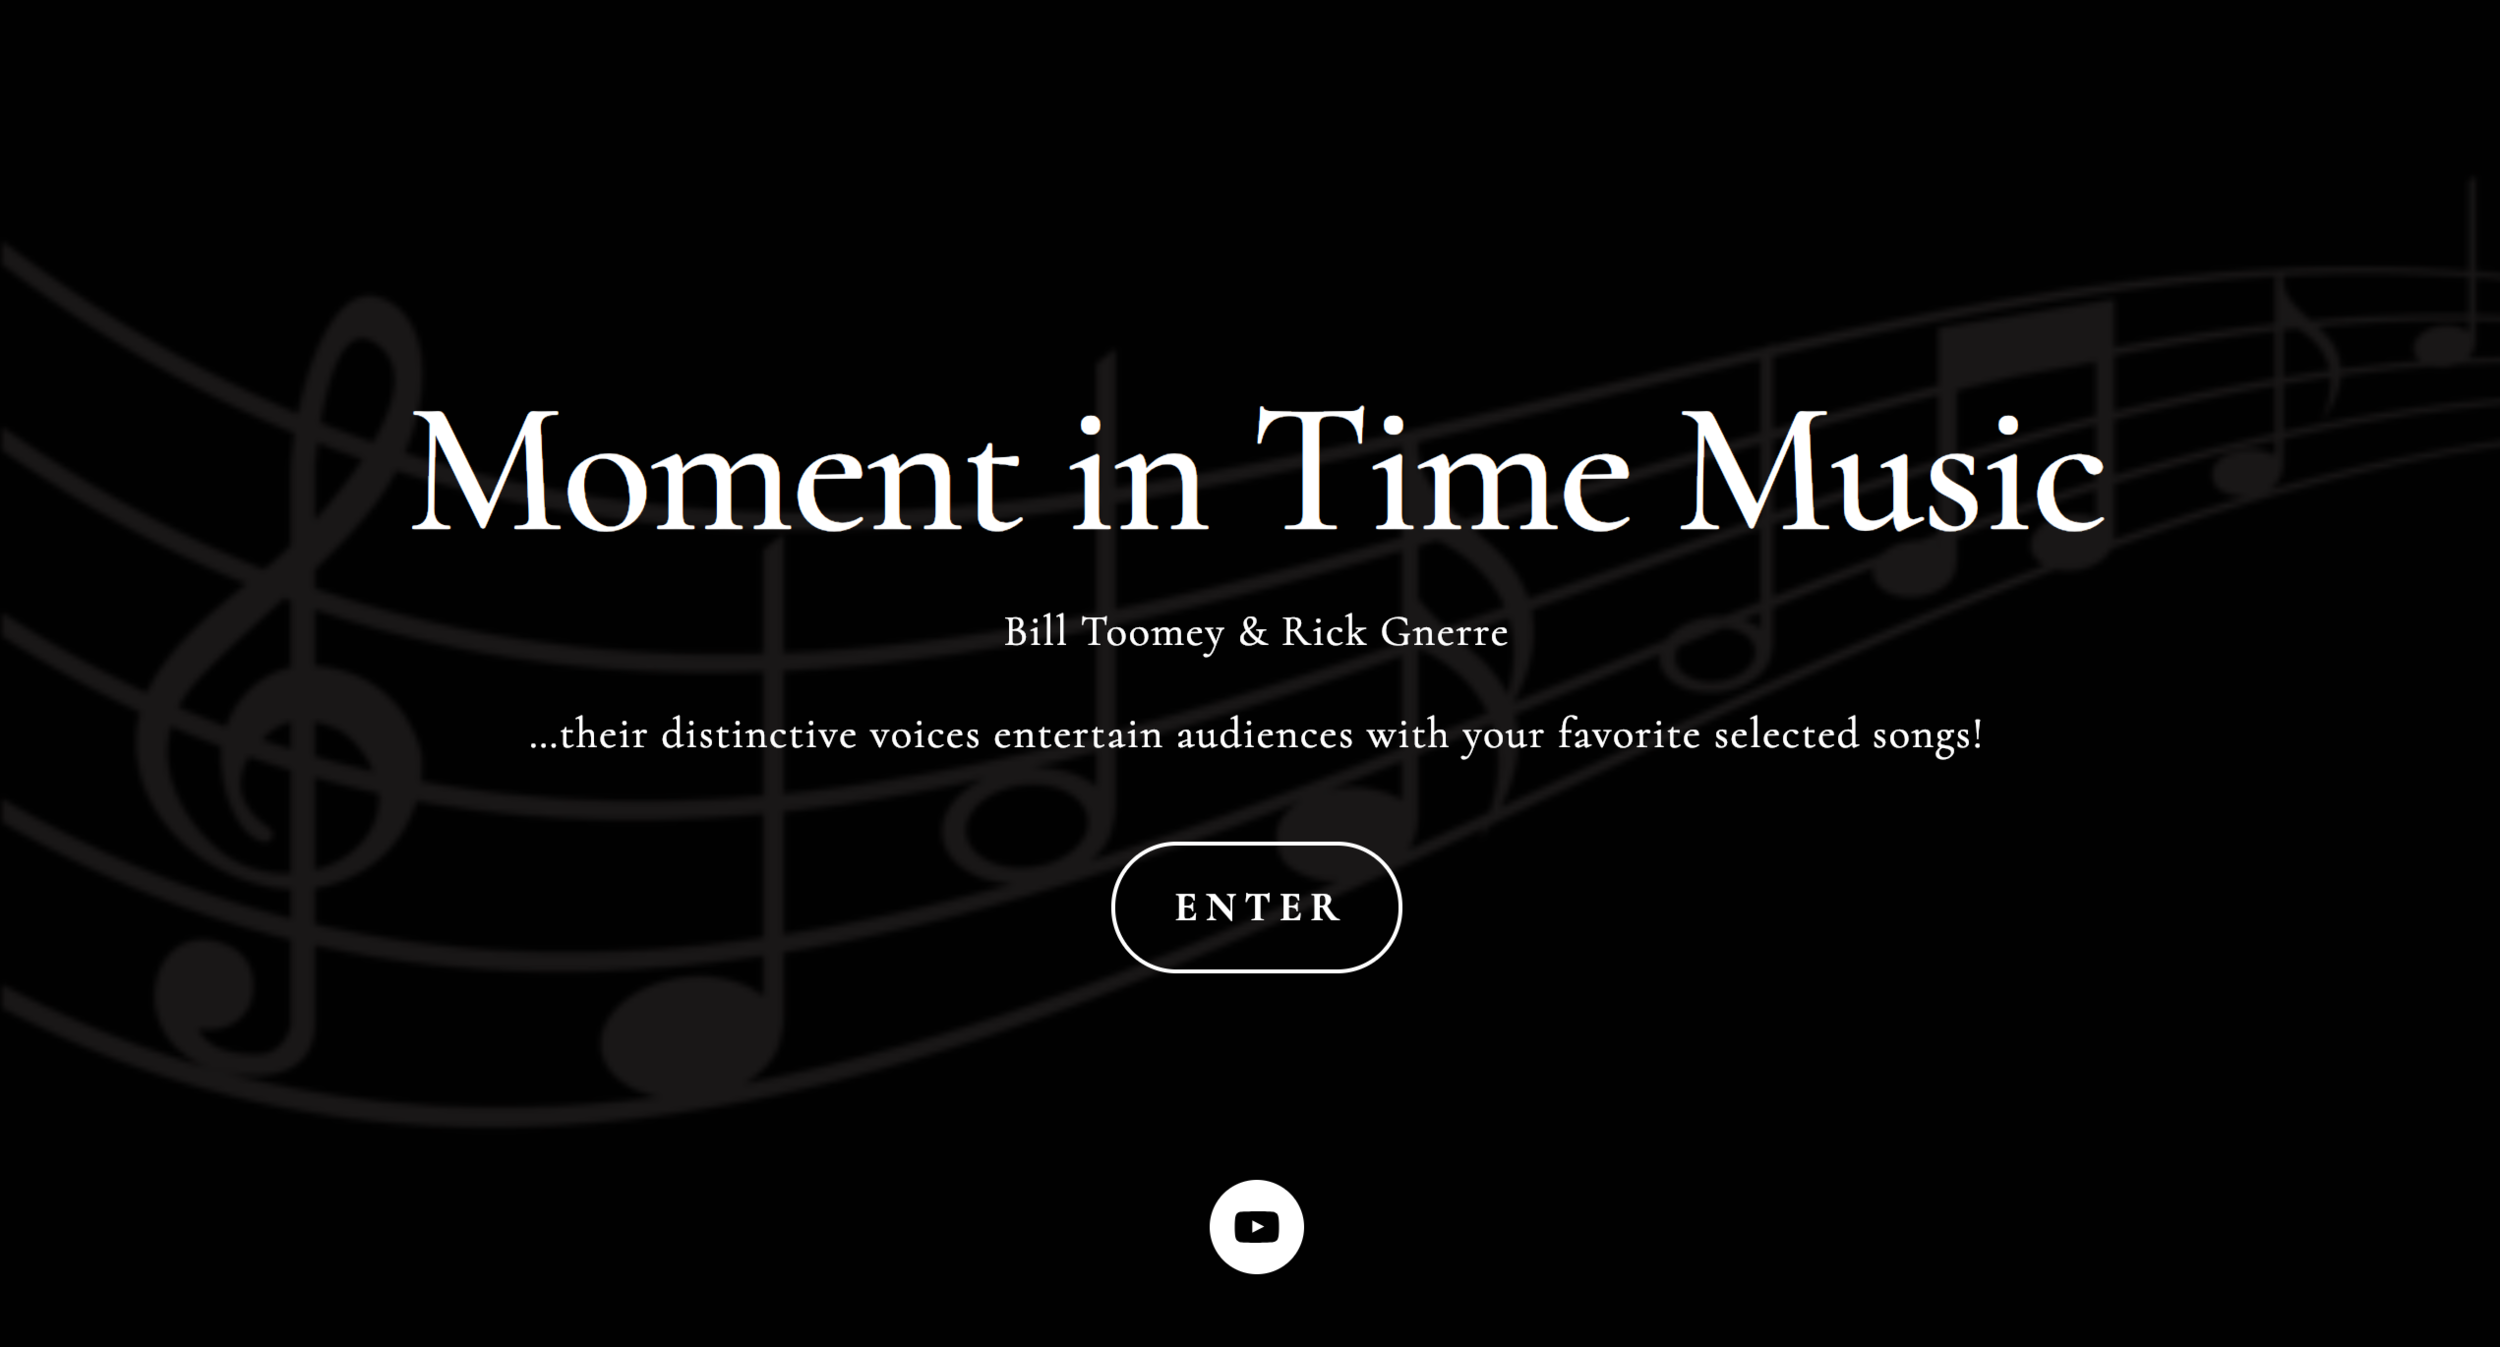 A Moment in Time Music